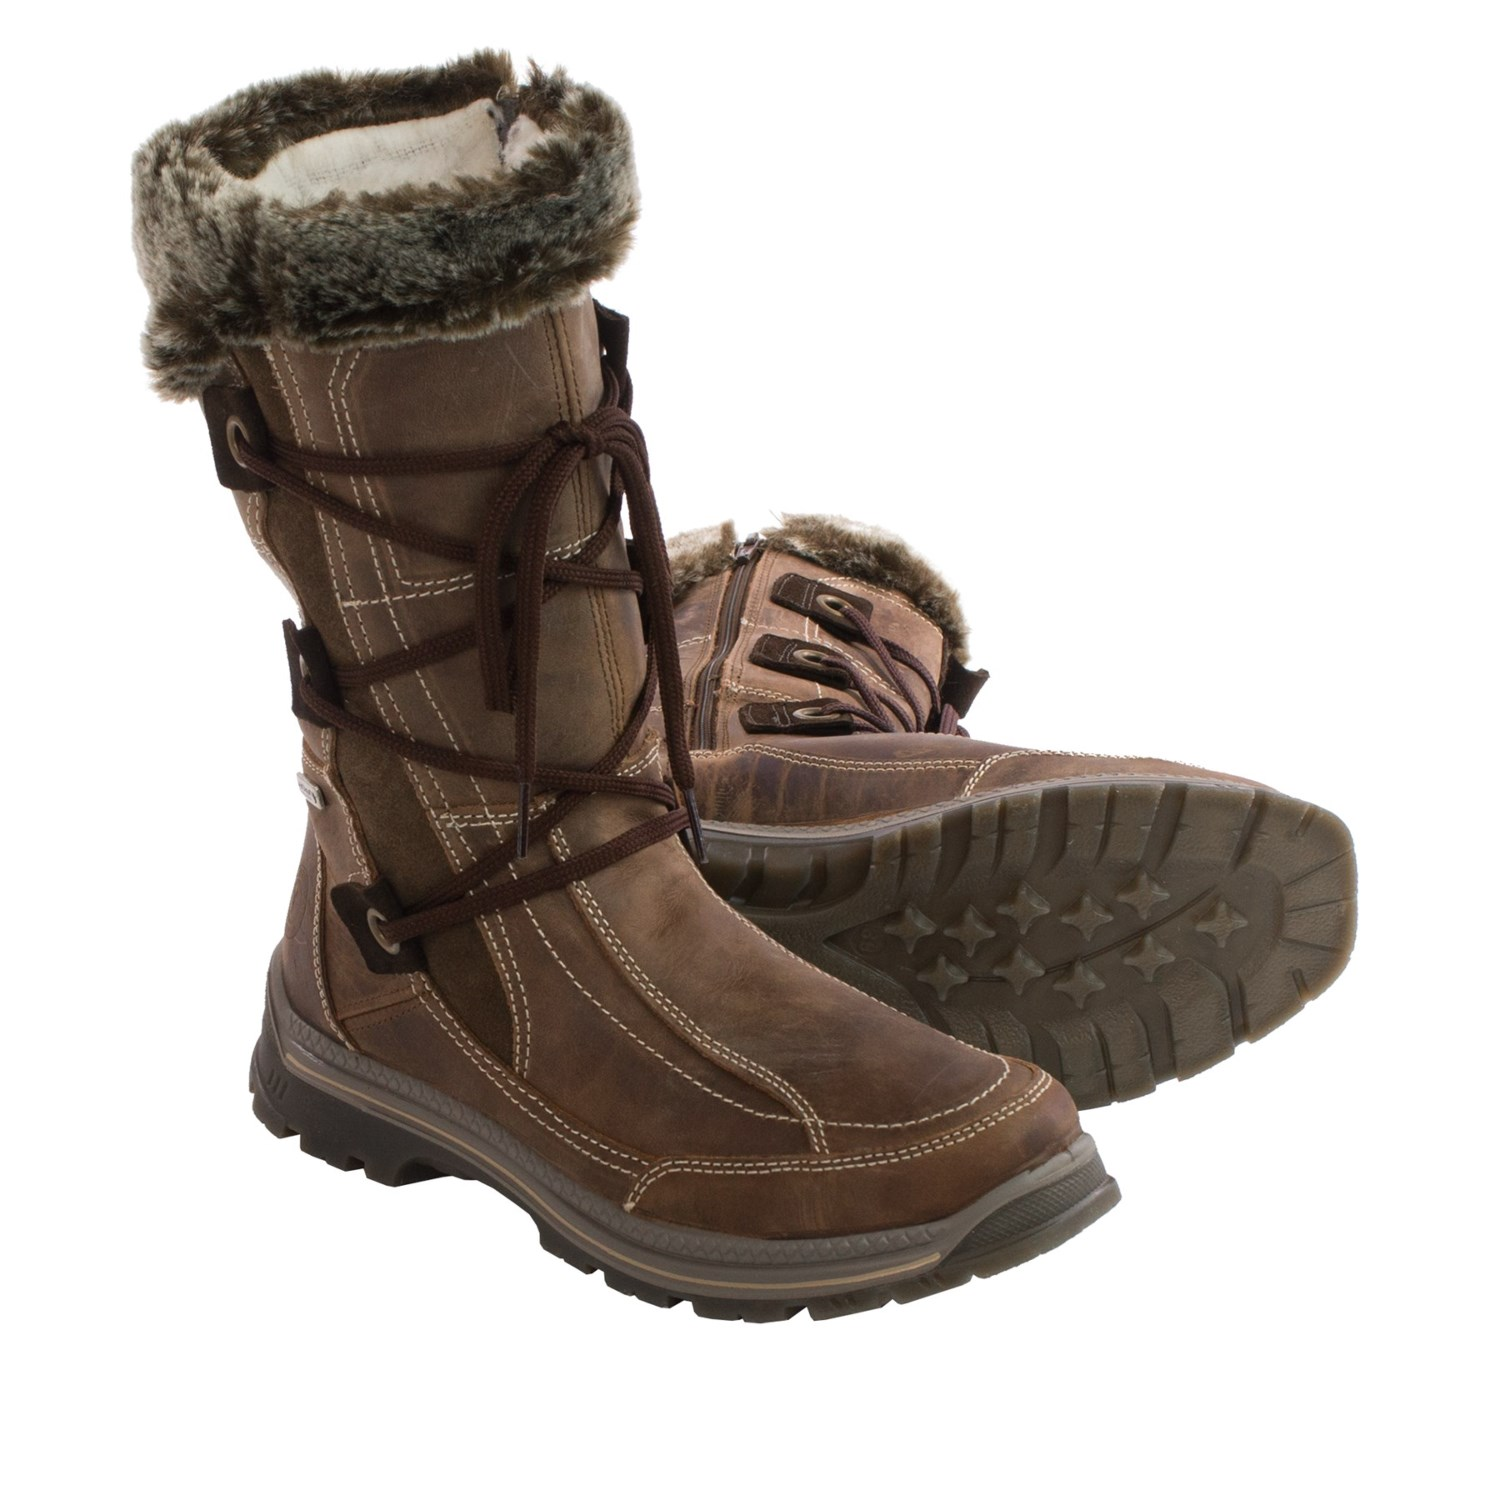 Womens Snow Boots Clearance IdNOROUq